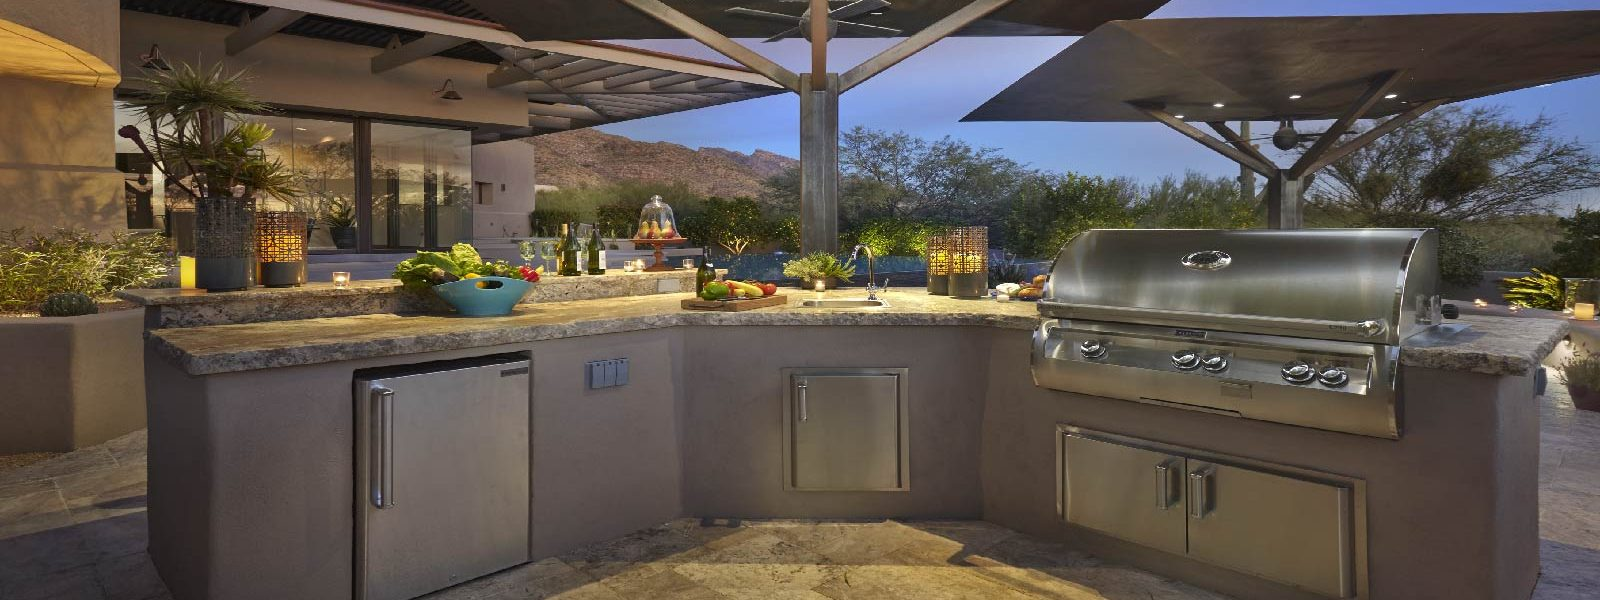 The garden gate landscape design at an affordable price for Kitchen design tucson